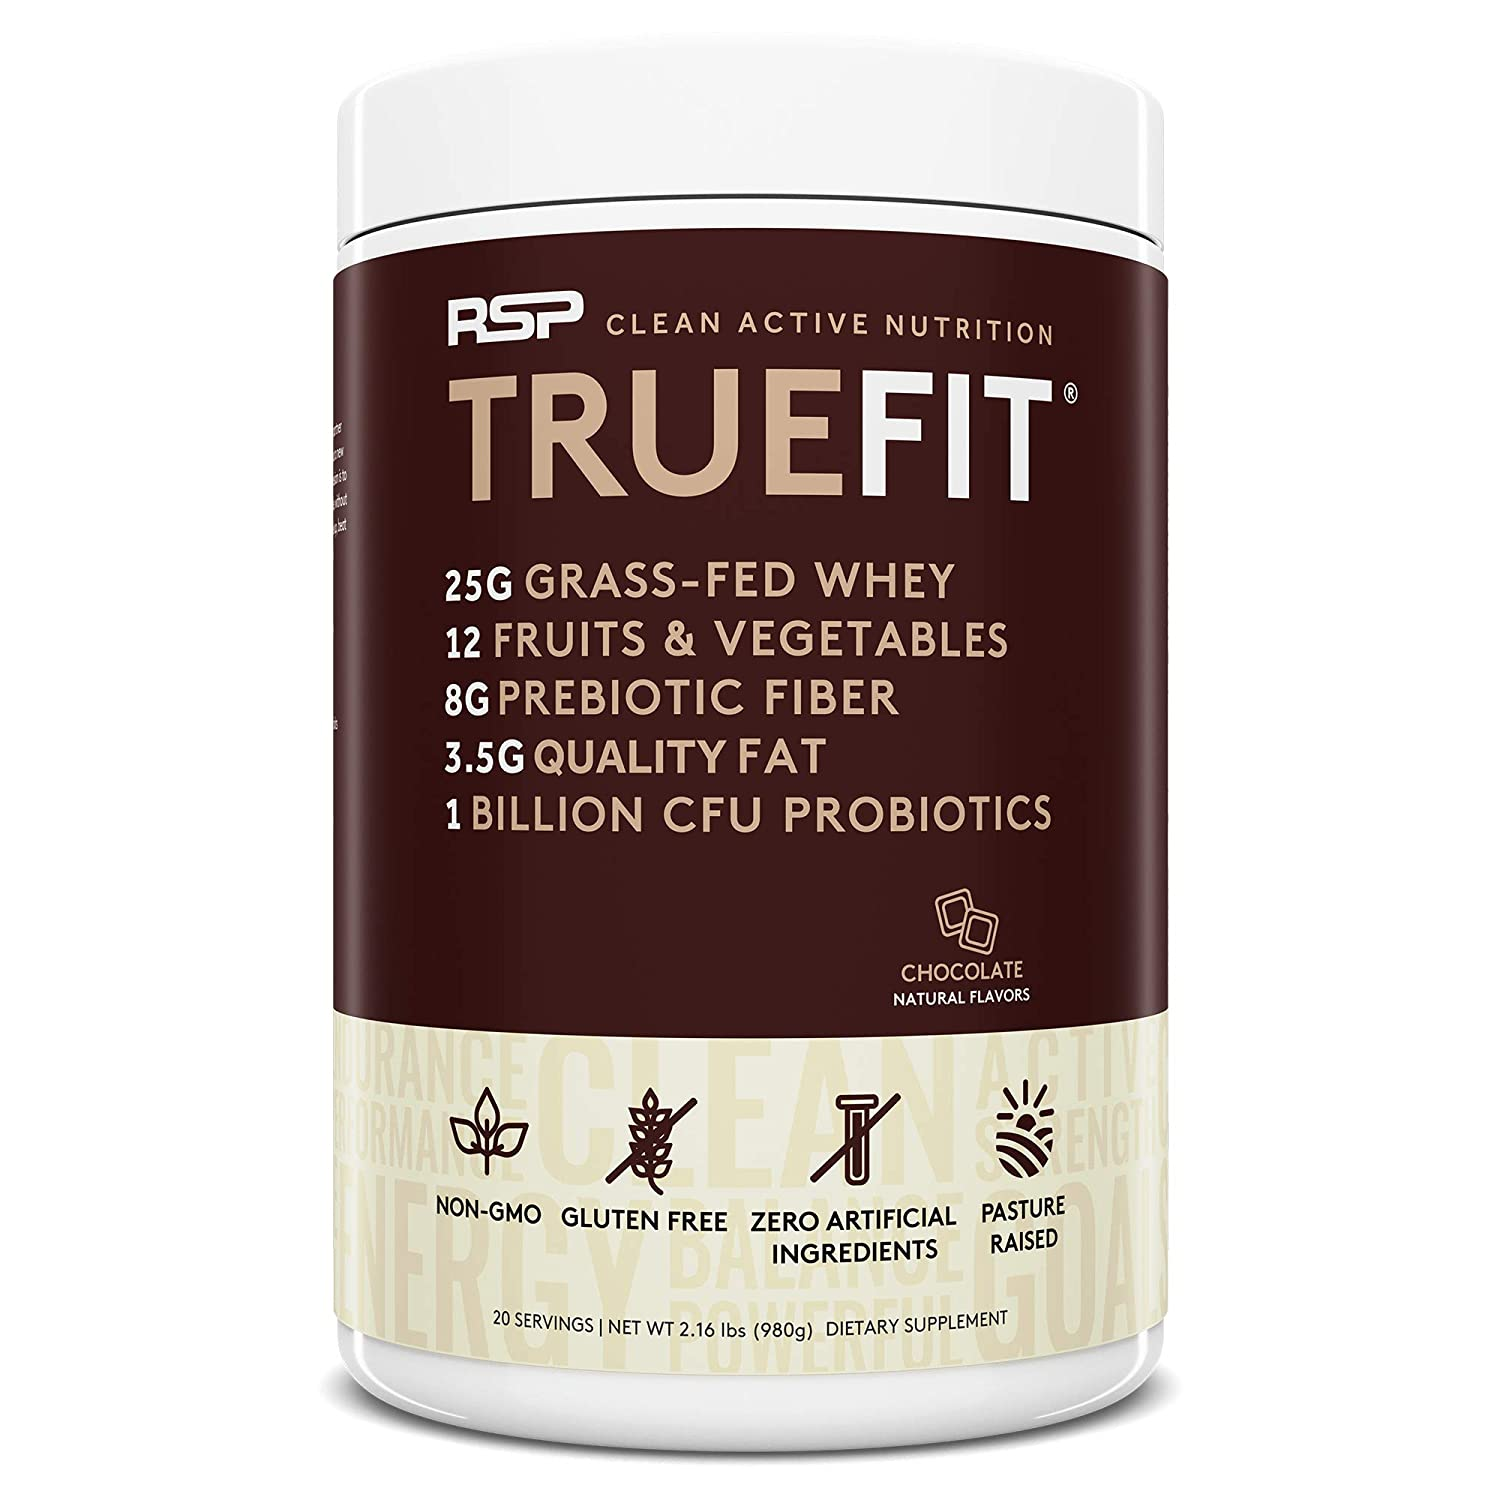 RSP TrueFit – Grass Fed Lean Meal Replacement Protein Shake, All Natural Whey Protein Powder with Fiber Probiotics, Non-GMO, Gluten-Free No Artificial Sweeteners, 2.0 LB Choc Packaging May Vary